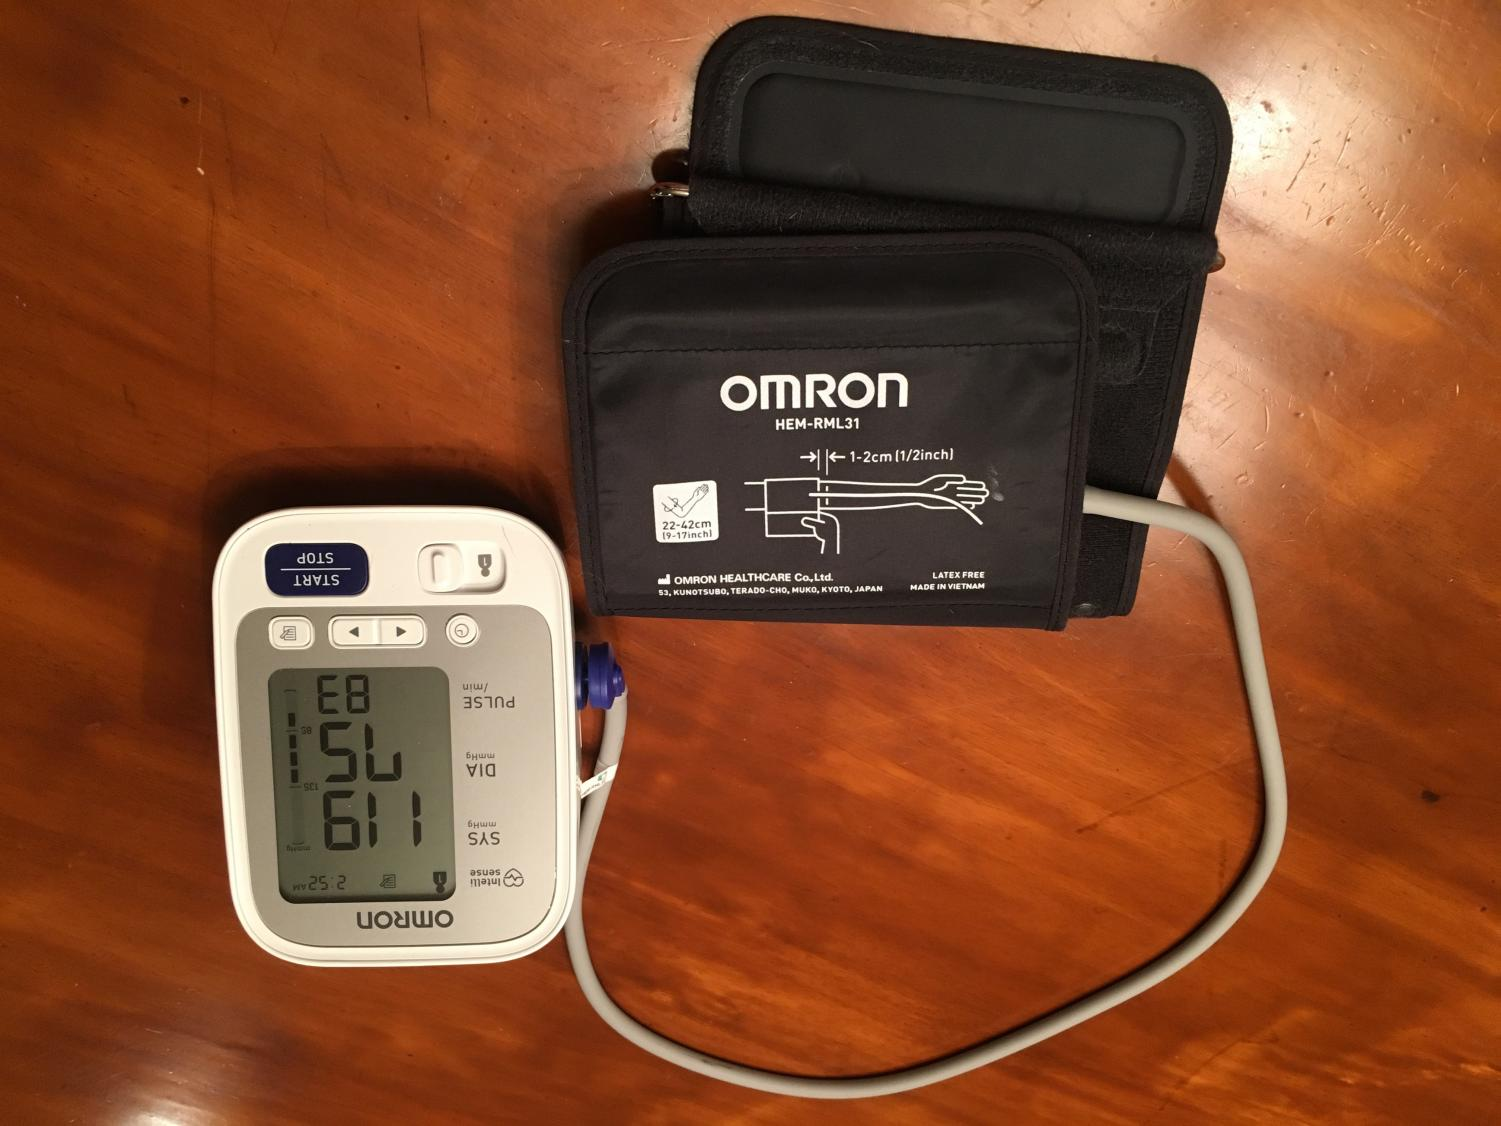 Marina Pilger, junior, used this device to measure the blood pressure of Padua and Salesianum students.